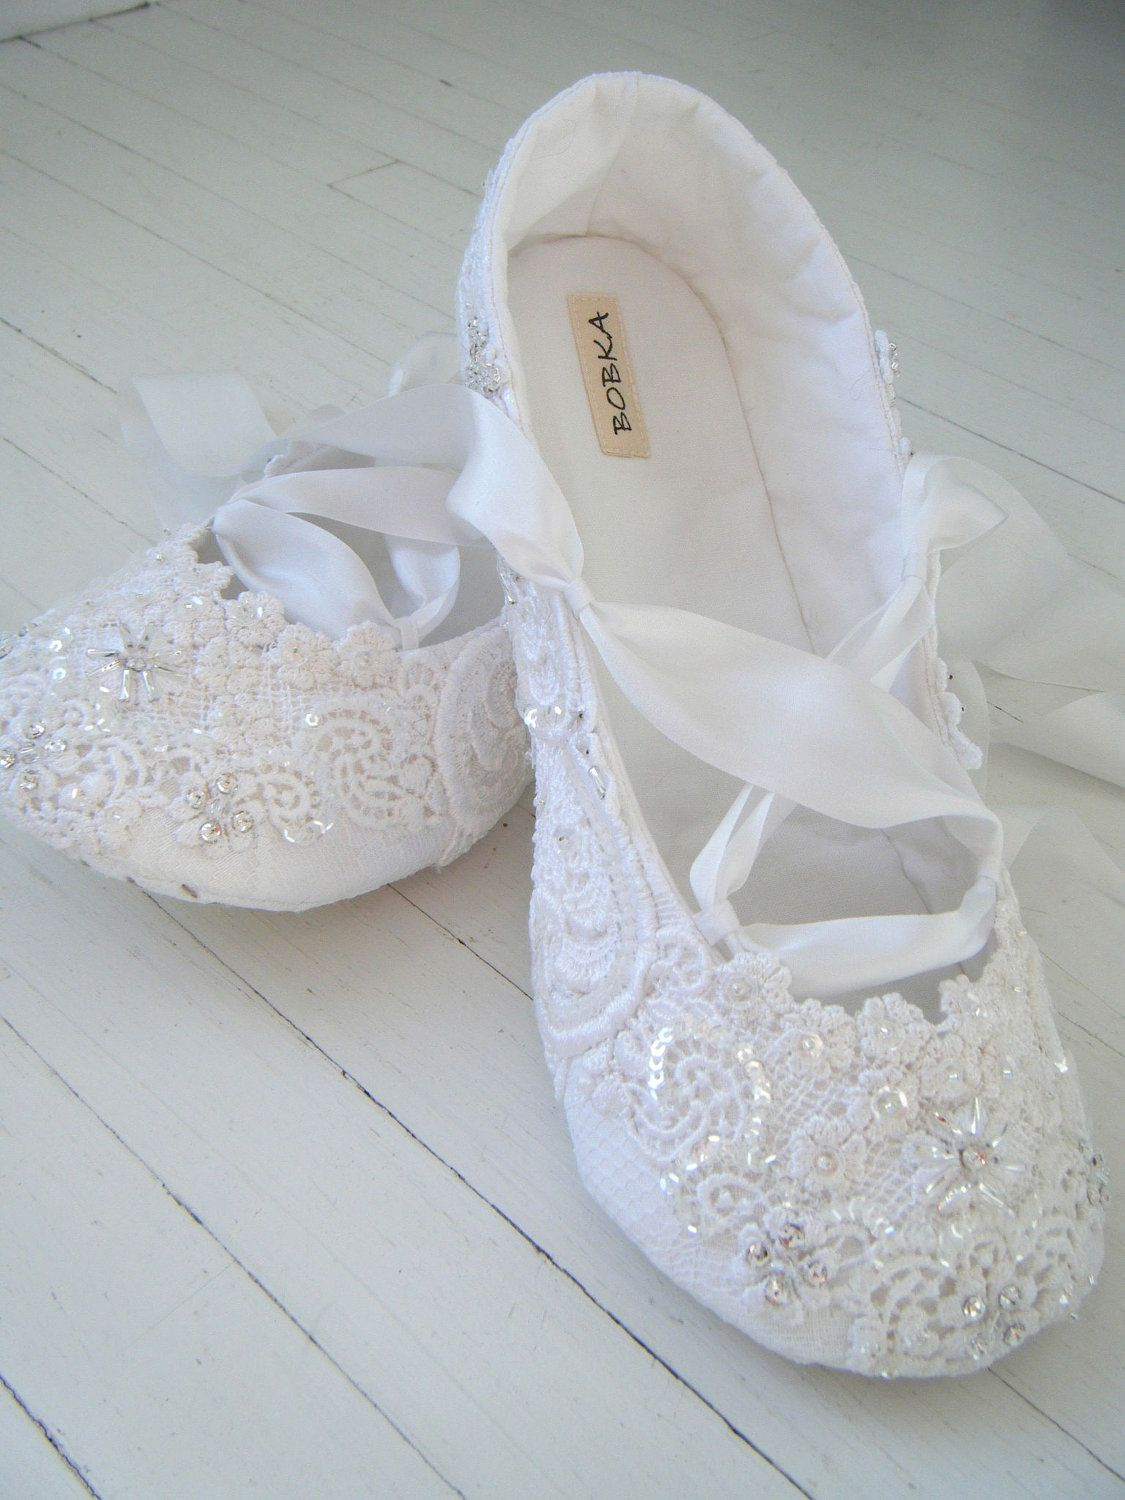 Bridal Shoes Flats, Wedding Ballet Shoes, White Crystal